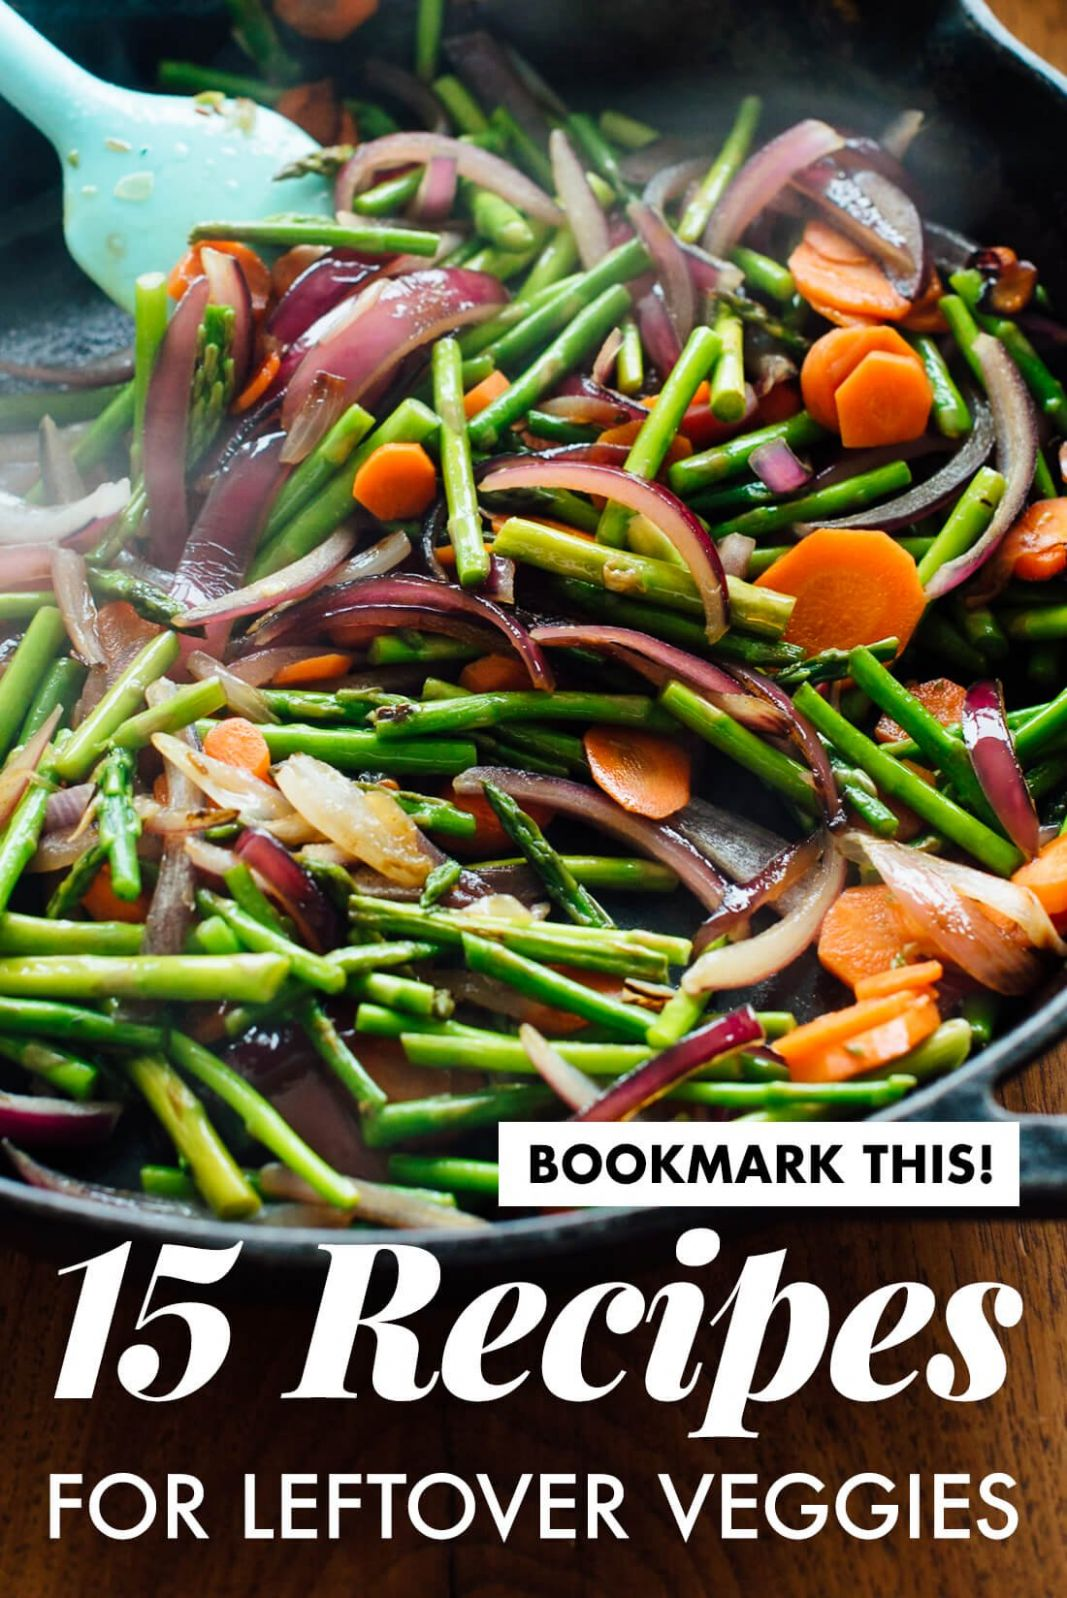 9 Recipes for Leftover Veggies - Cookie and Kate - Recipes Vegetables Only